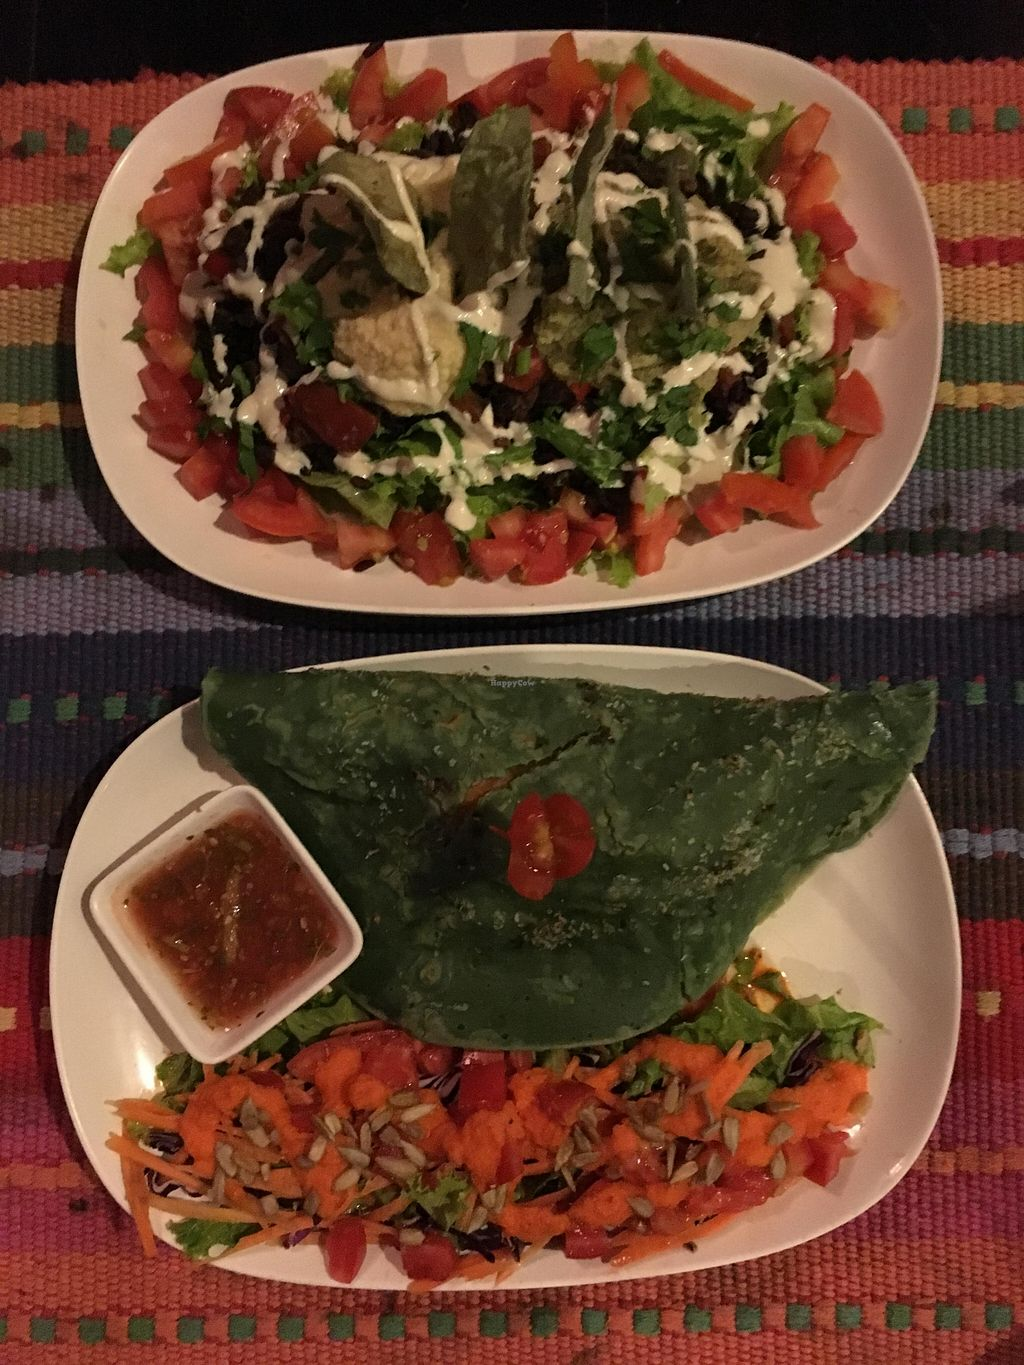 Photo of Karma Kafe  by lantern <br/>Burrito <br/> March 20, 2016  - <a href='/contact/abuse/image/56514/140709'>Report</a>